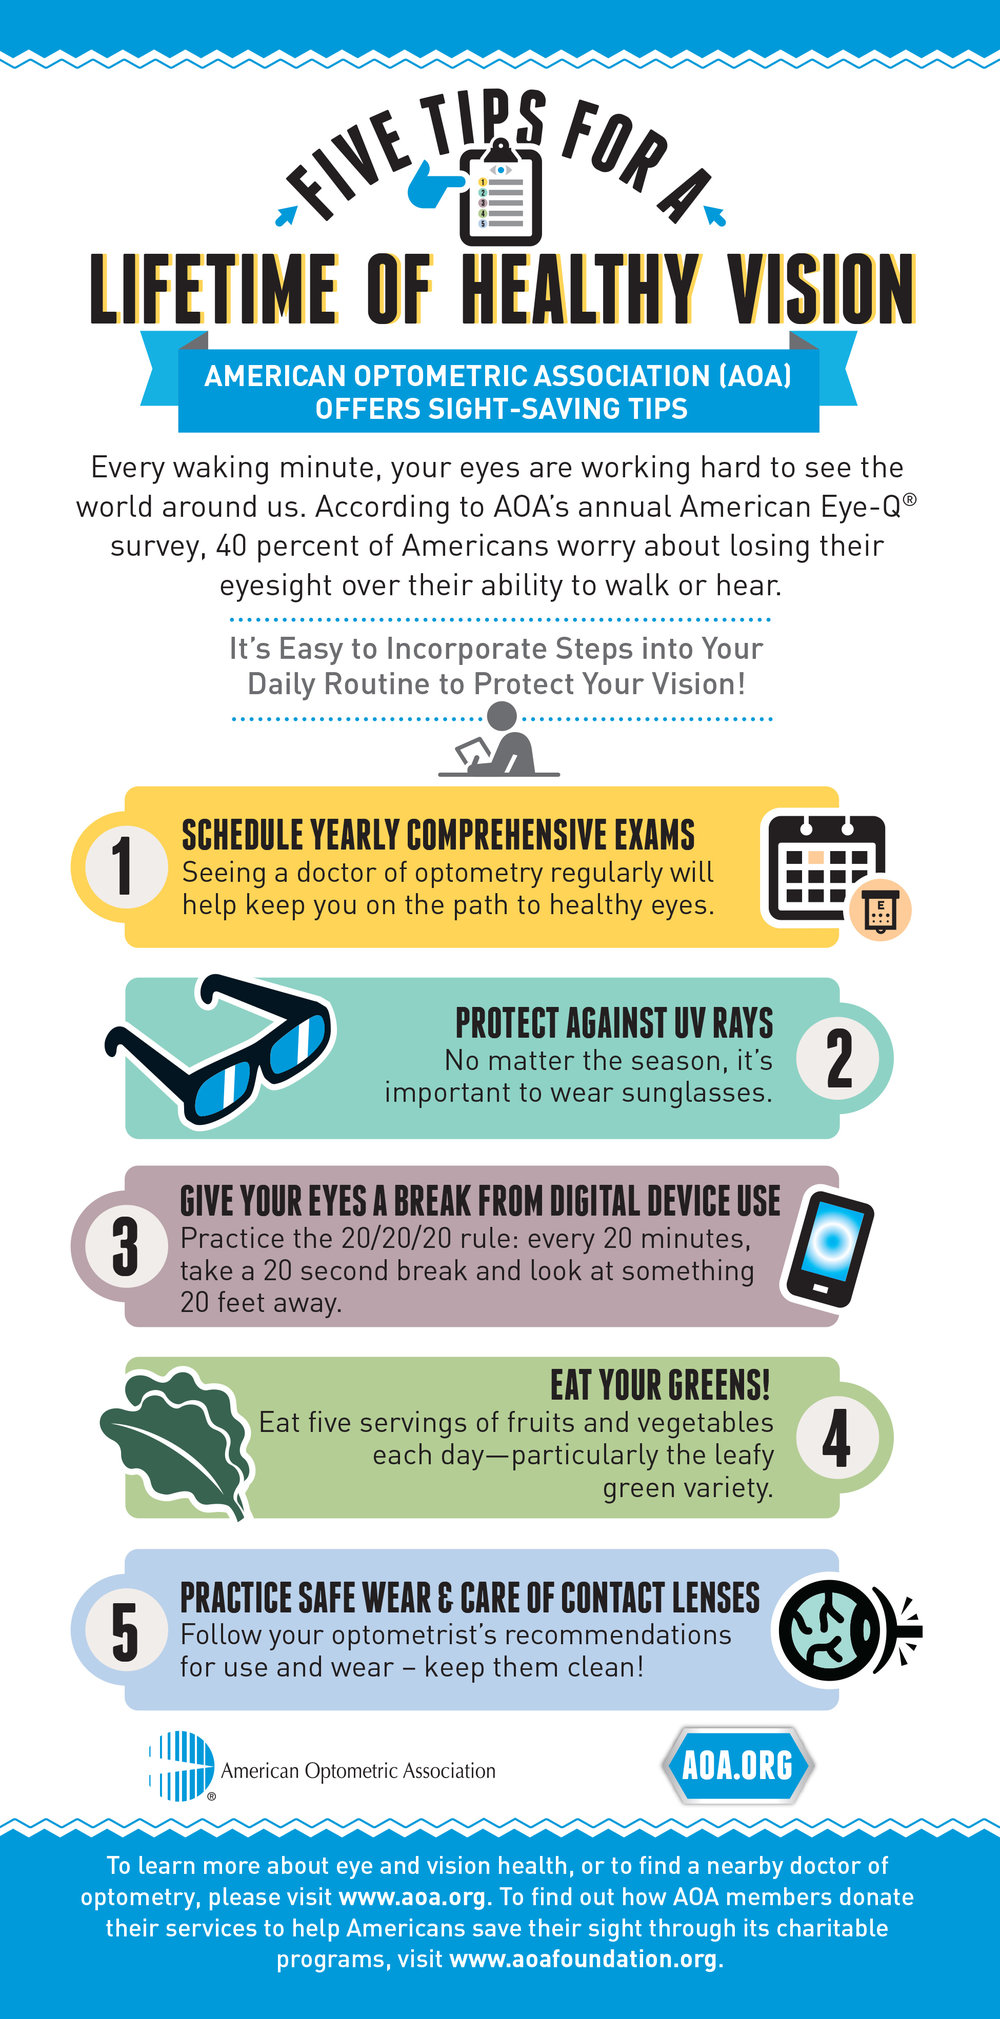 Lifetime-of-Healthy-Vision_5-Tips_Infographic.png